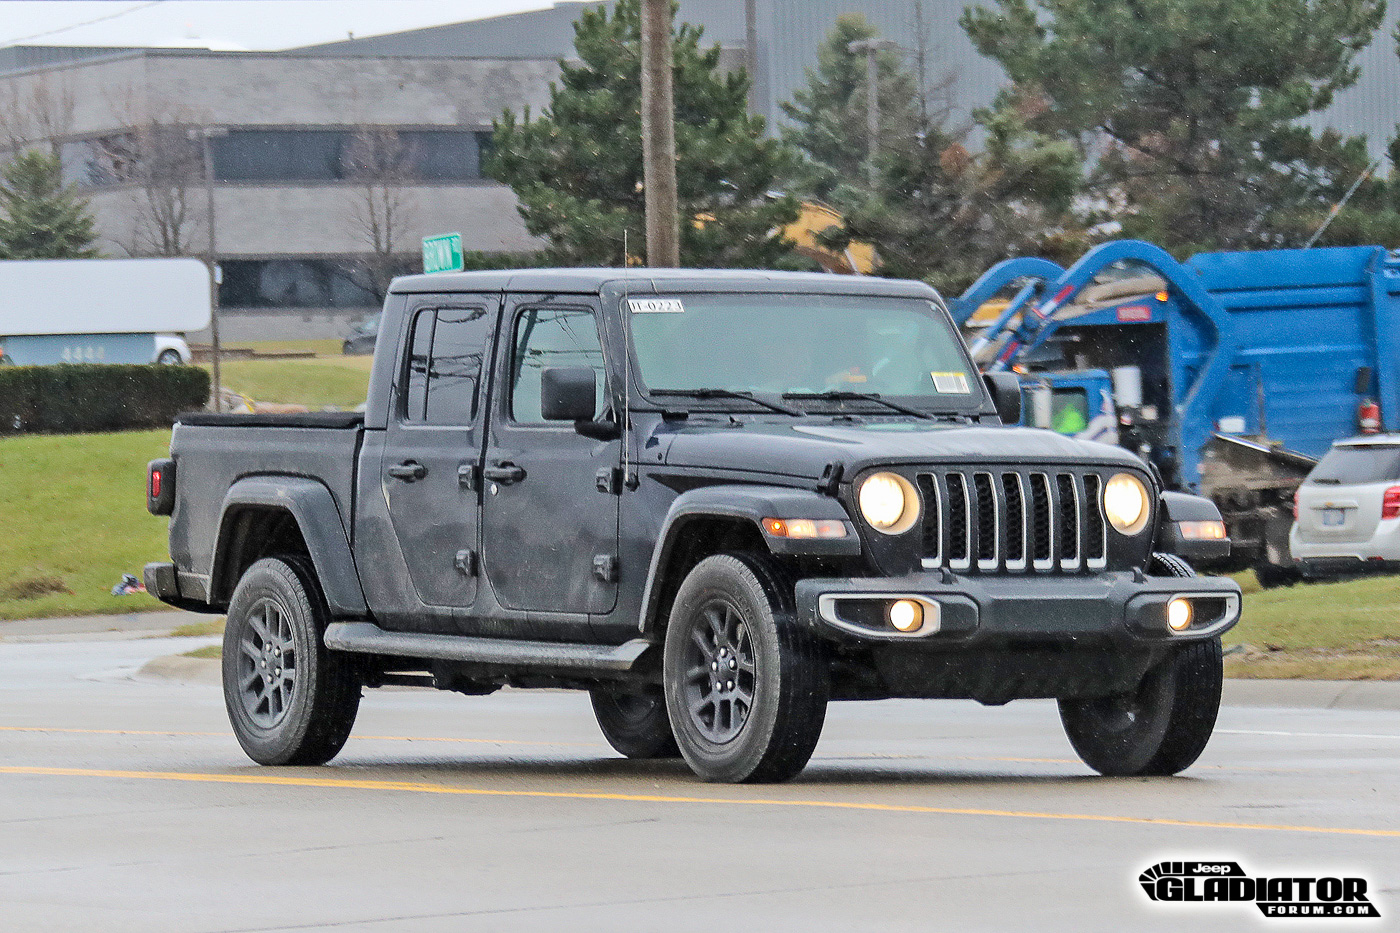 2020-Jeep-Gladiator-JT-Pickup-Truck-Spotted-Undisguised-1.jpg